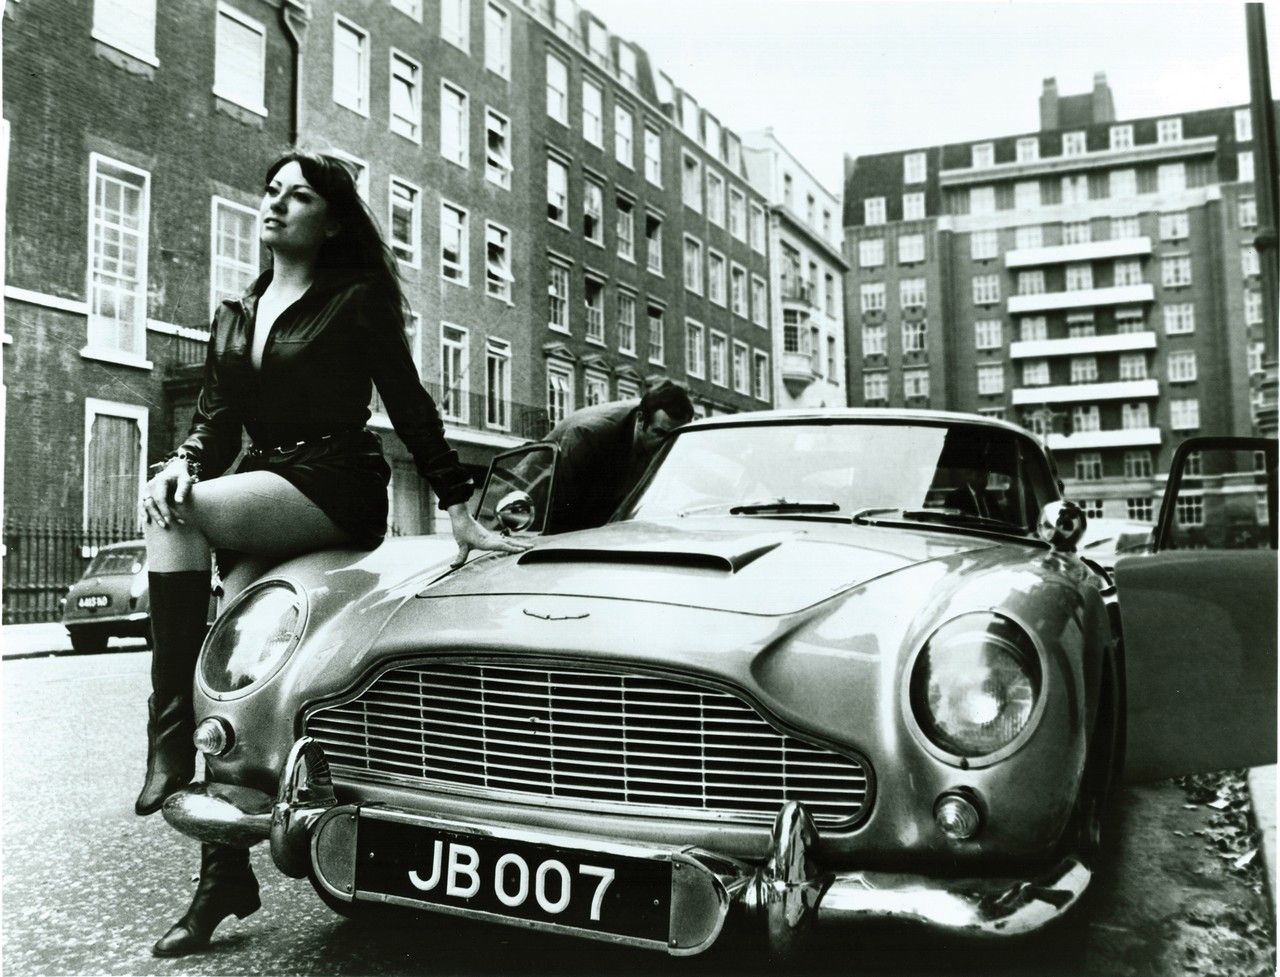 1964 Aston Martin DB5: Car that was used in Goldfinger. If its good enough for Bond it's definitely good enough for me:)